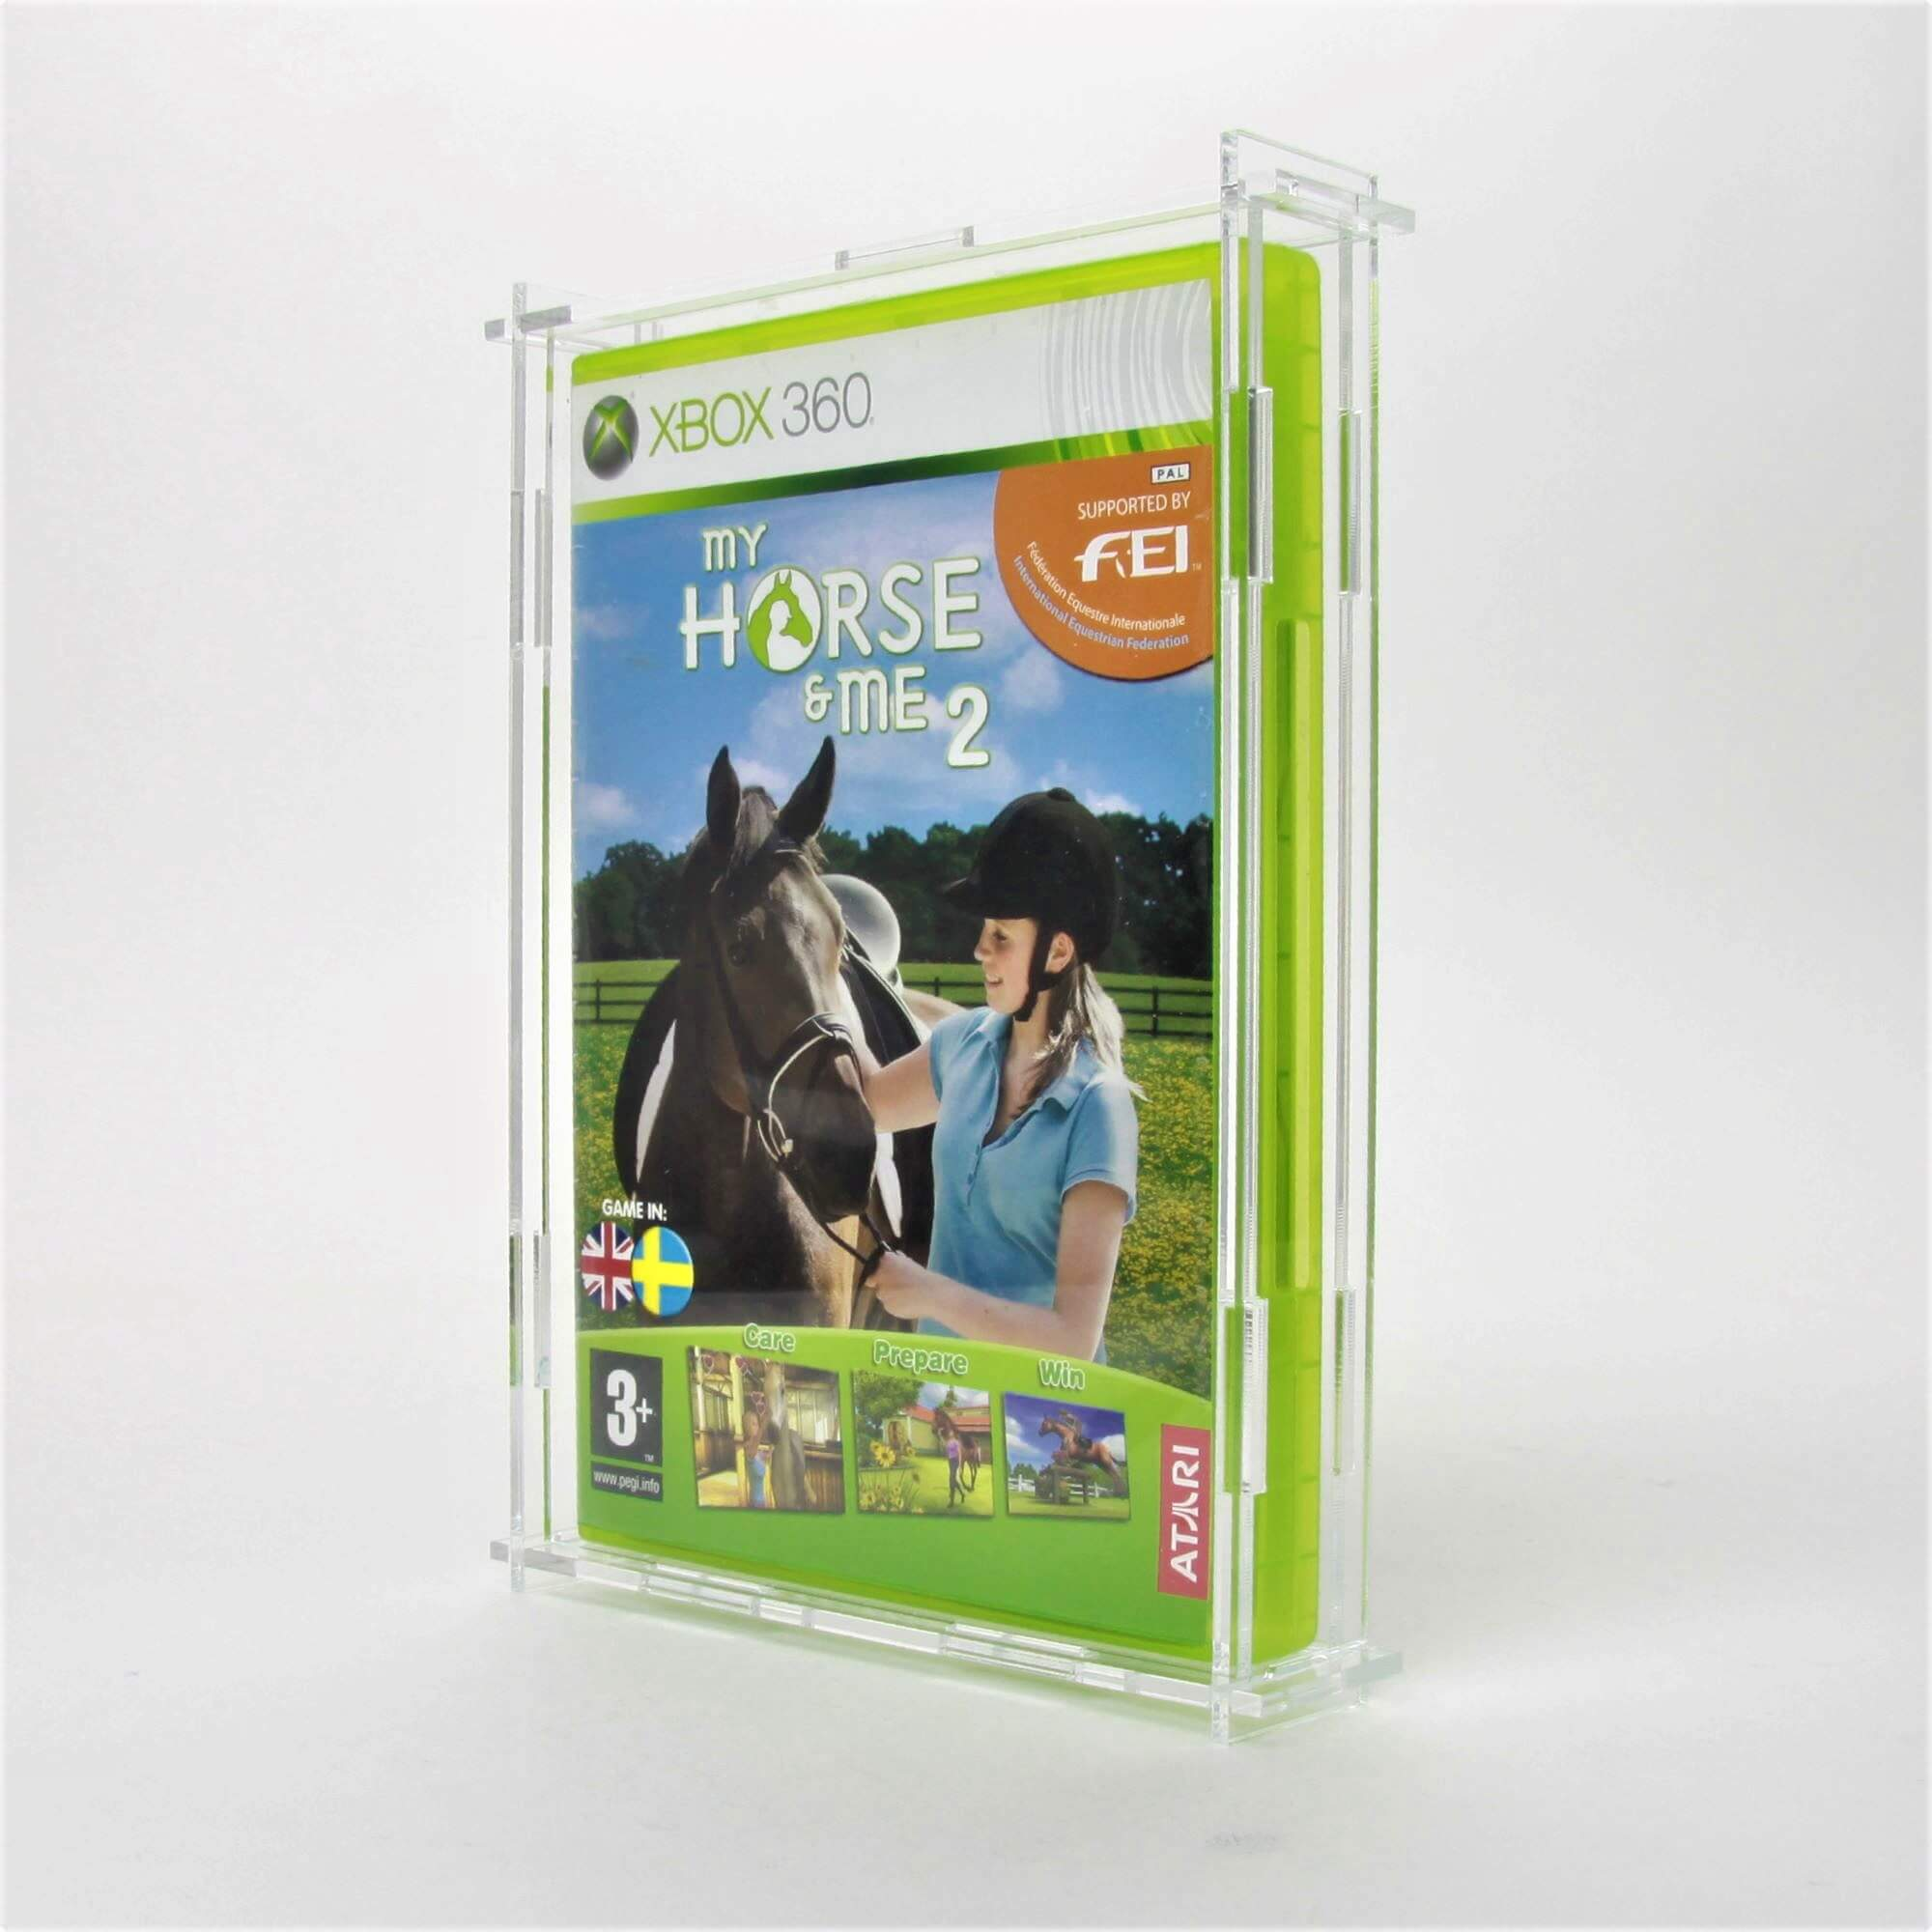 Clear Acrylic Microsoft Xbox 360 Game Display Case